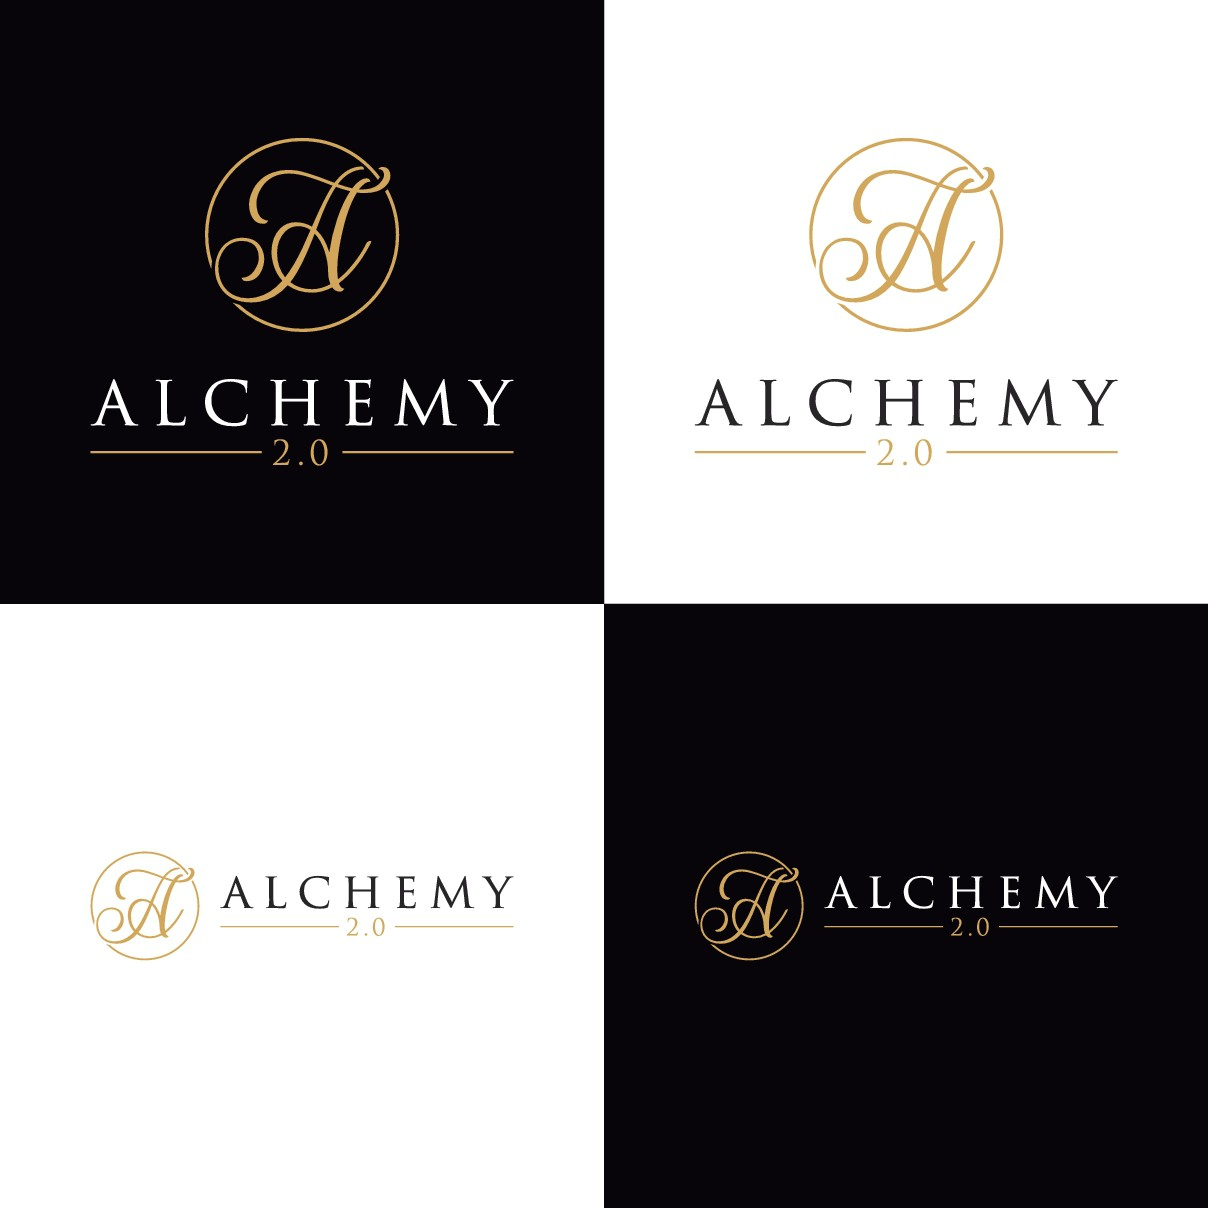 Logo and brand design for a consulting/coaching firm